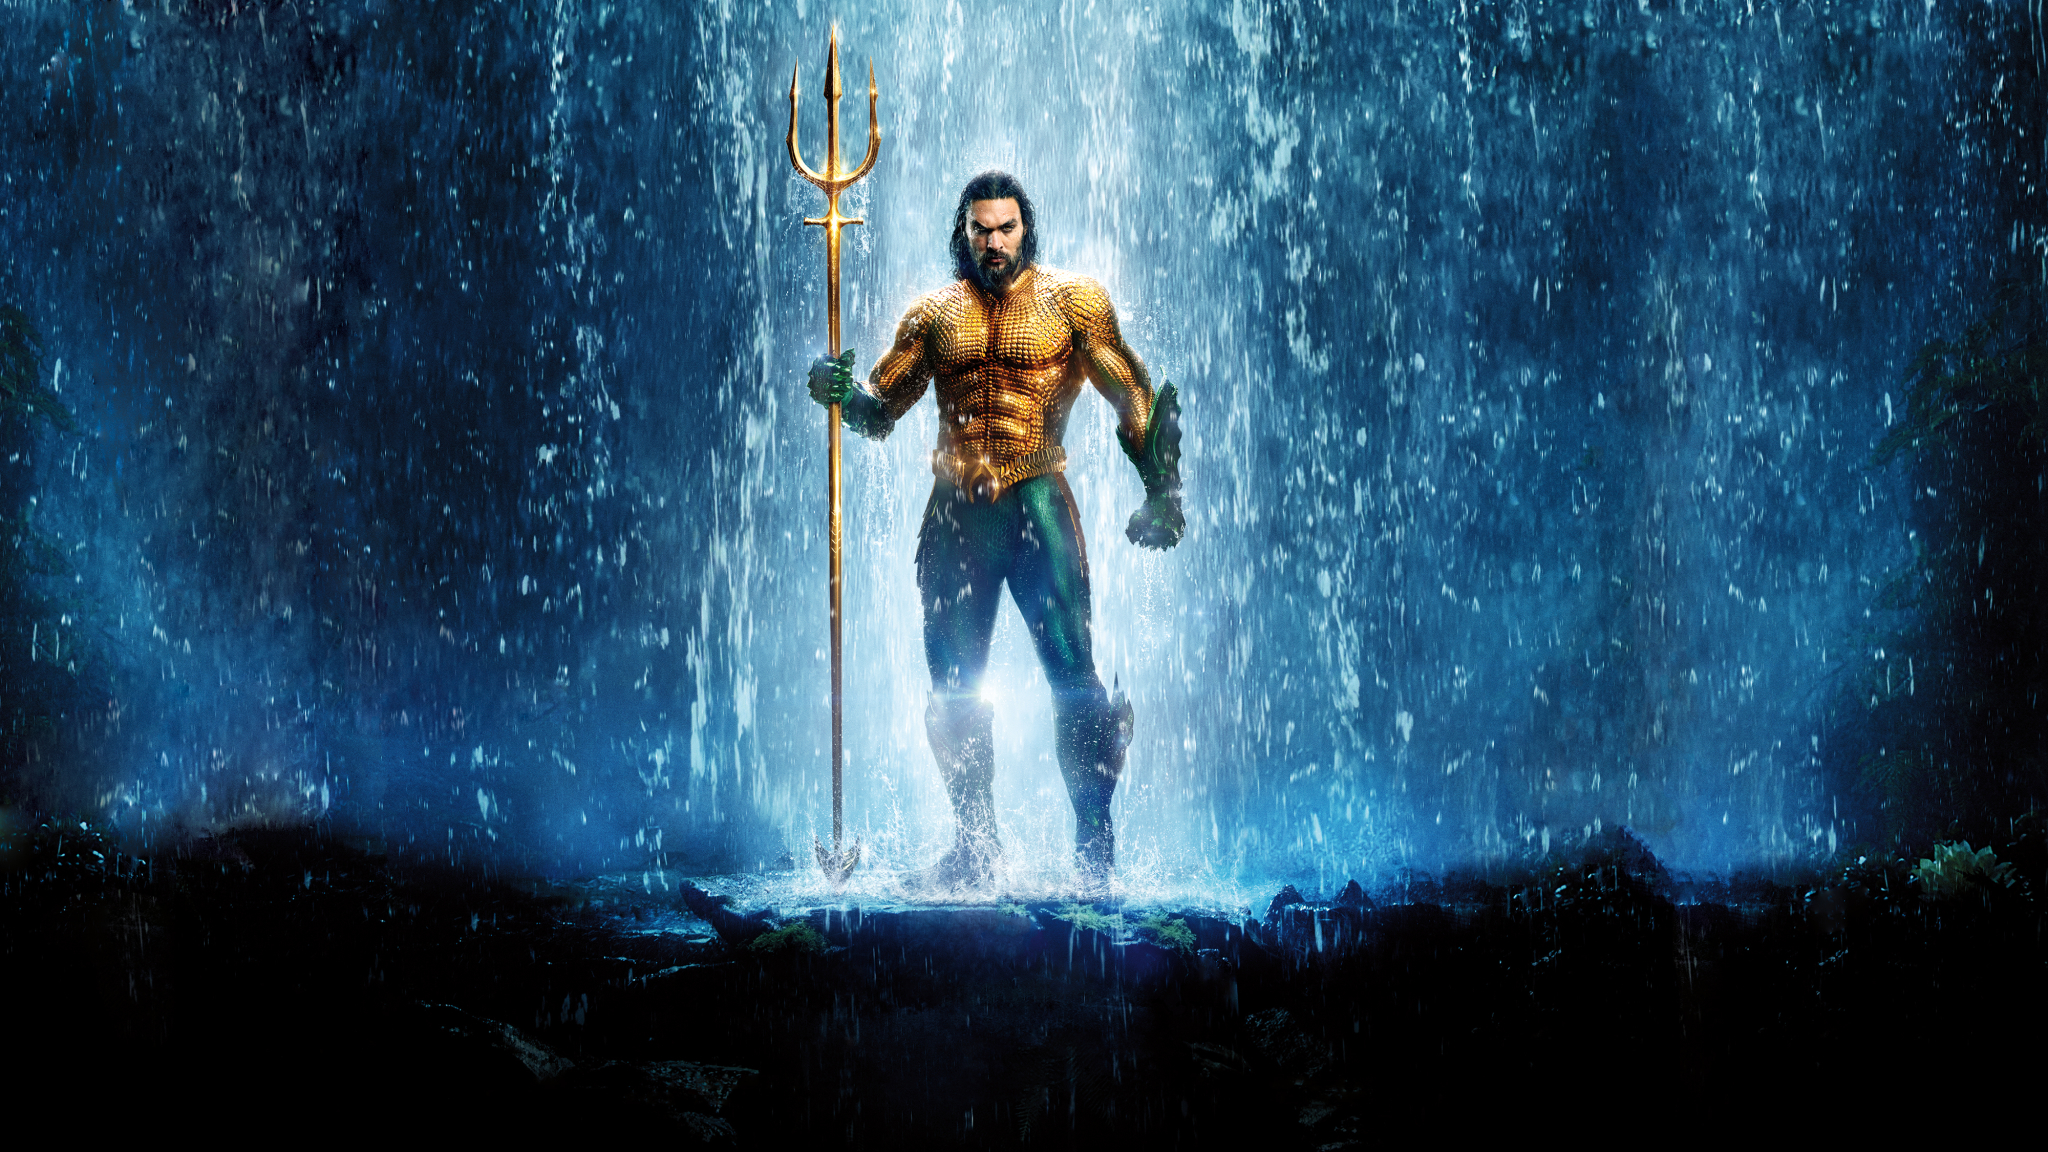 2018 Movie Posters: Aquaman Textless Poster 2018, HD 4K Wallpaper